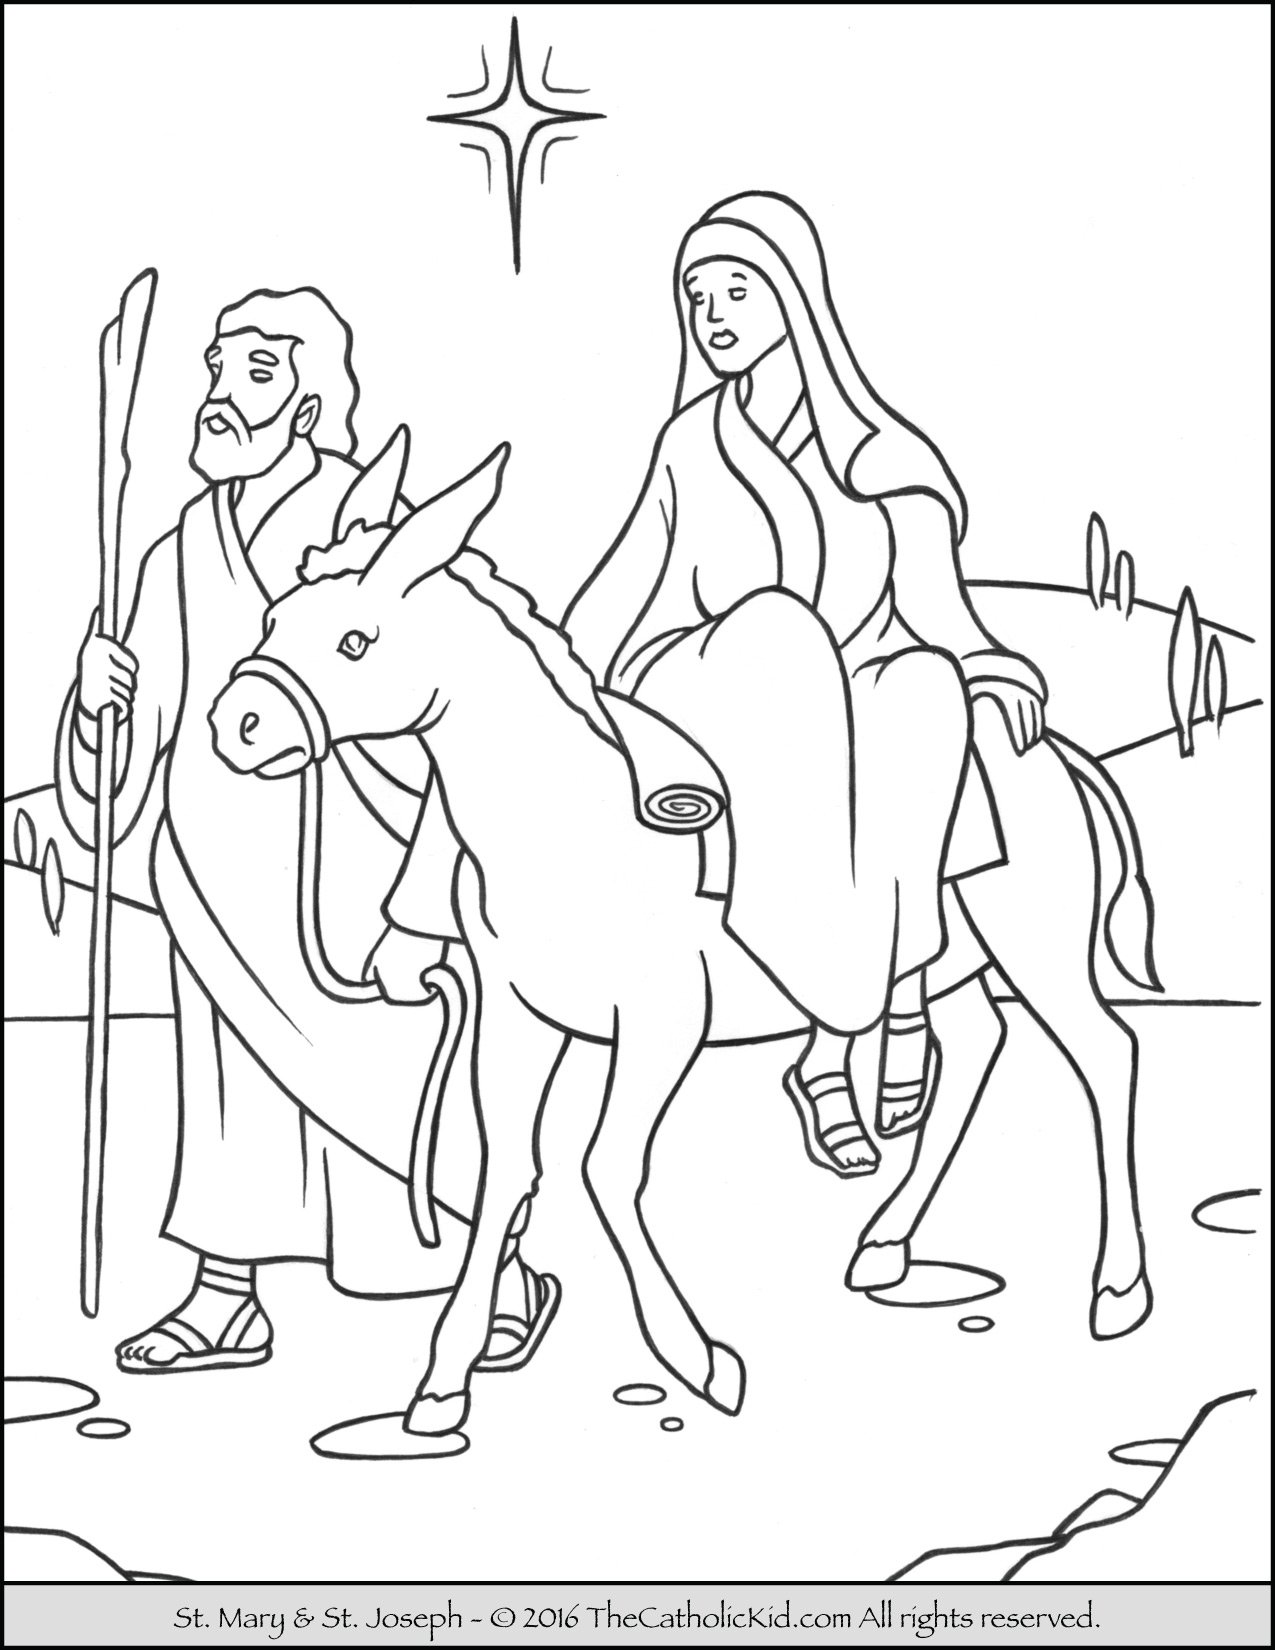 joseph mary coloring pages - photo#16